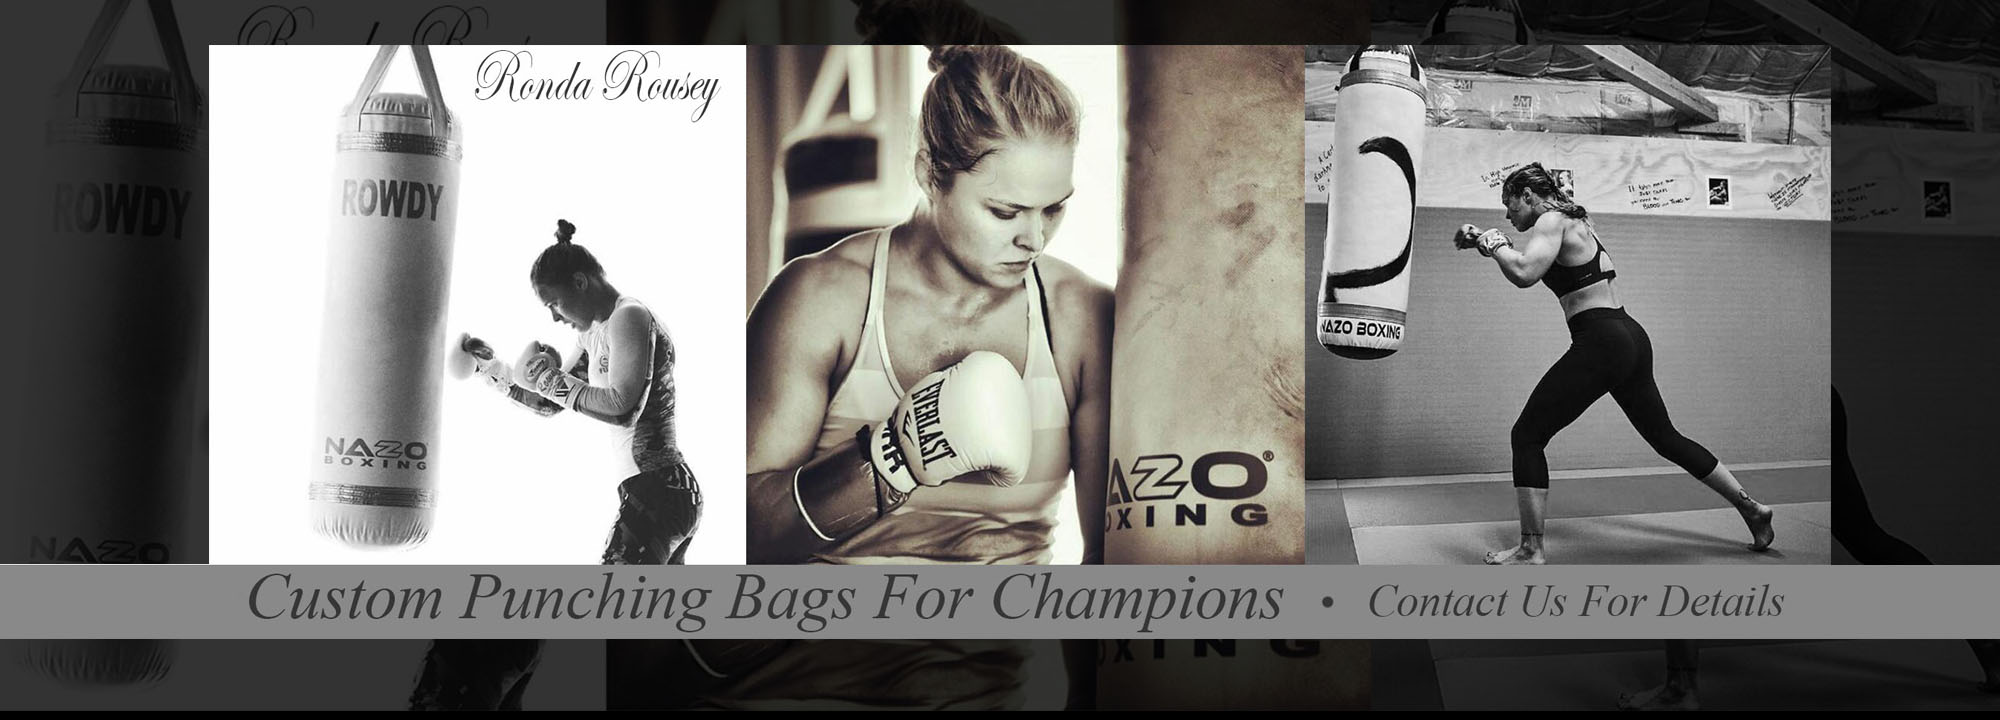 Ronda Rousey Punching Heavy Bag Made in USA